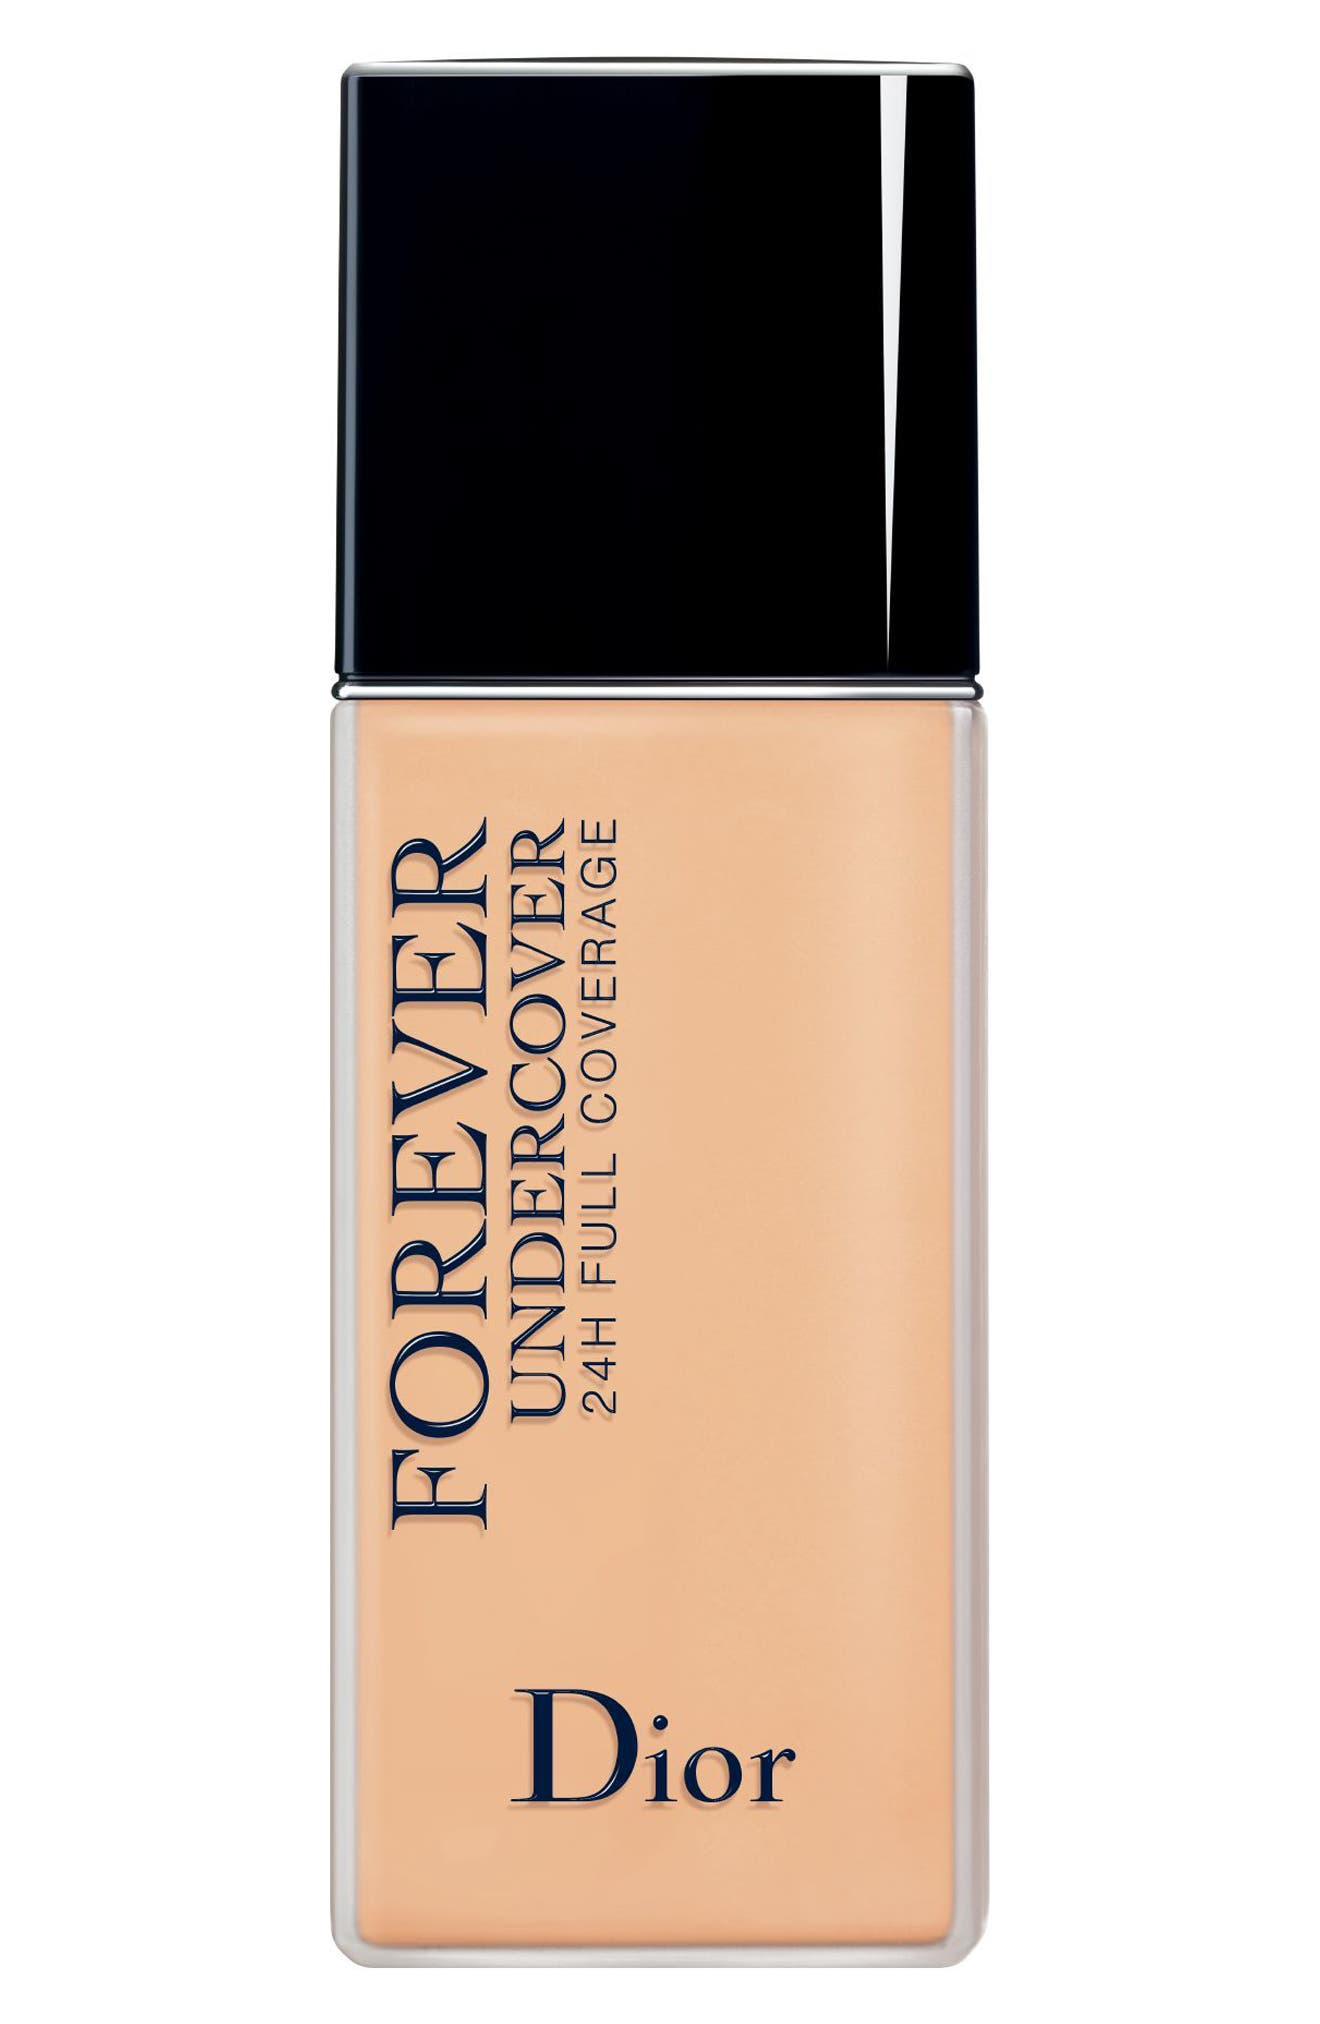 Dior Diorskin Forever Undercover 24-Hour Full Coverage Water-Based Foundation